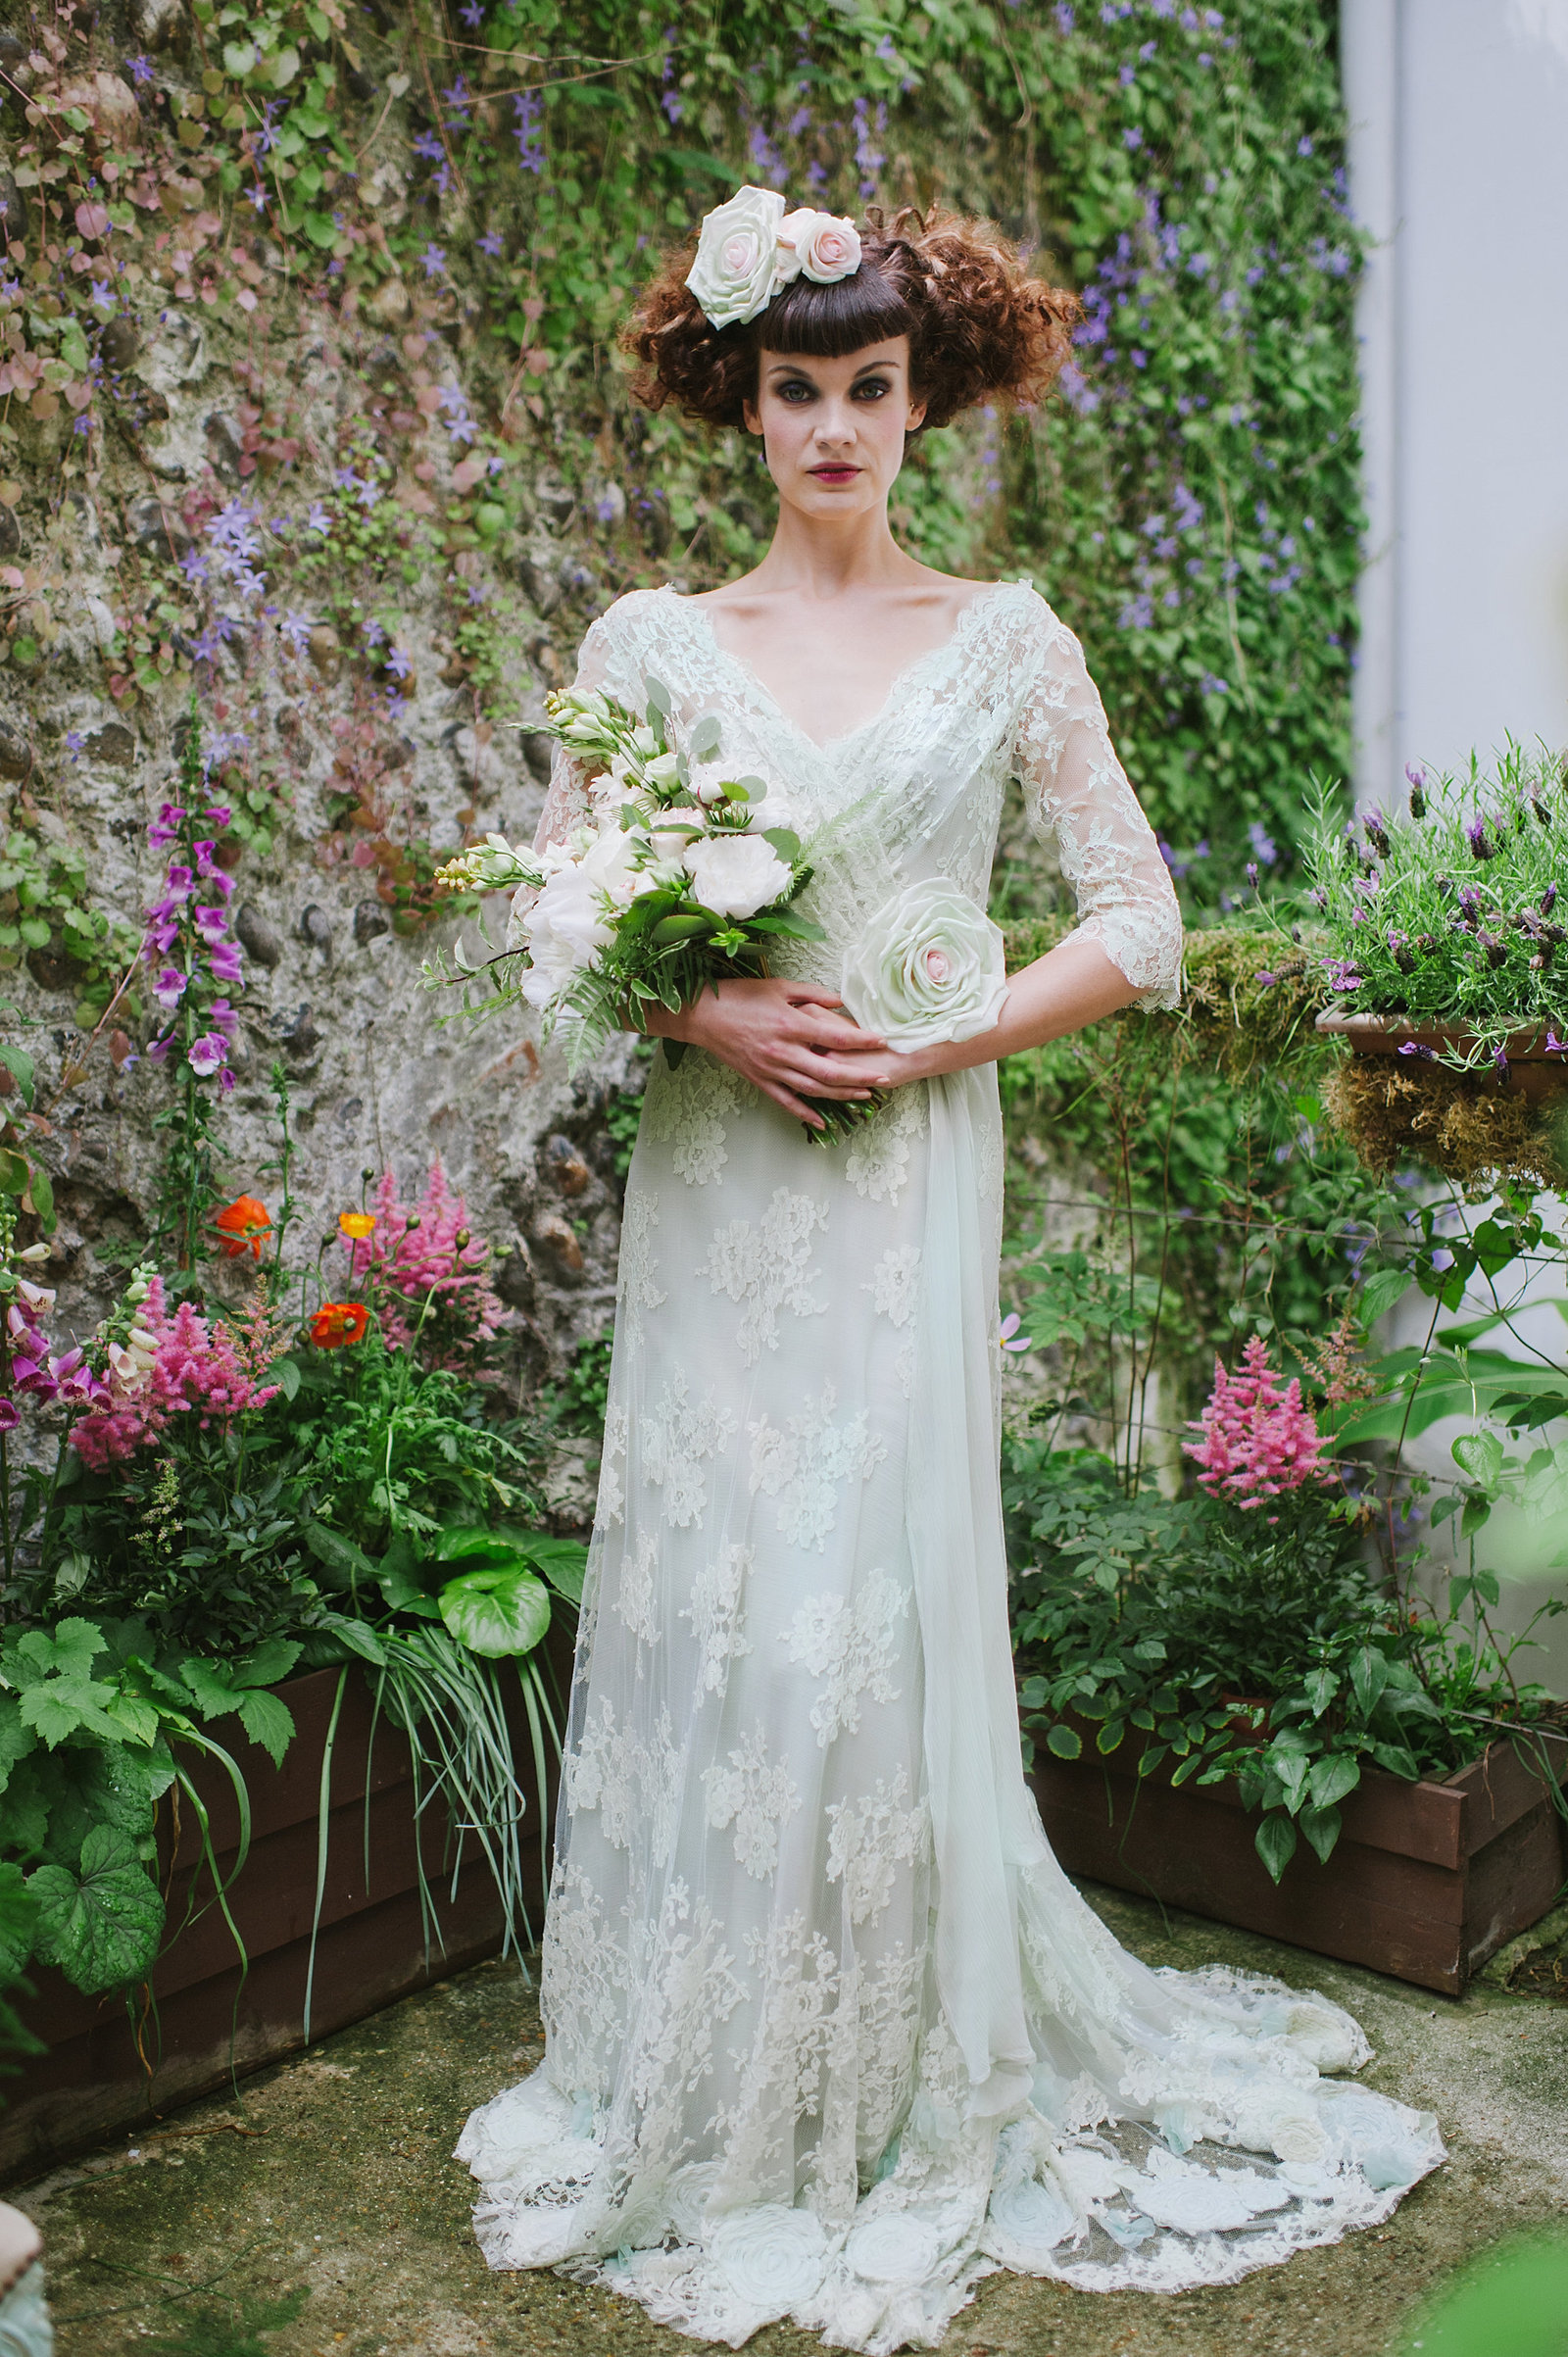 Langtry_pale_green_lace_edwardian_wedding_dress_JoanneFlemingDesign (3)